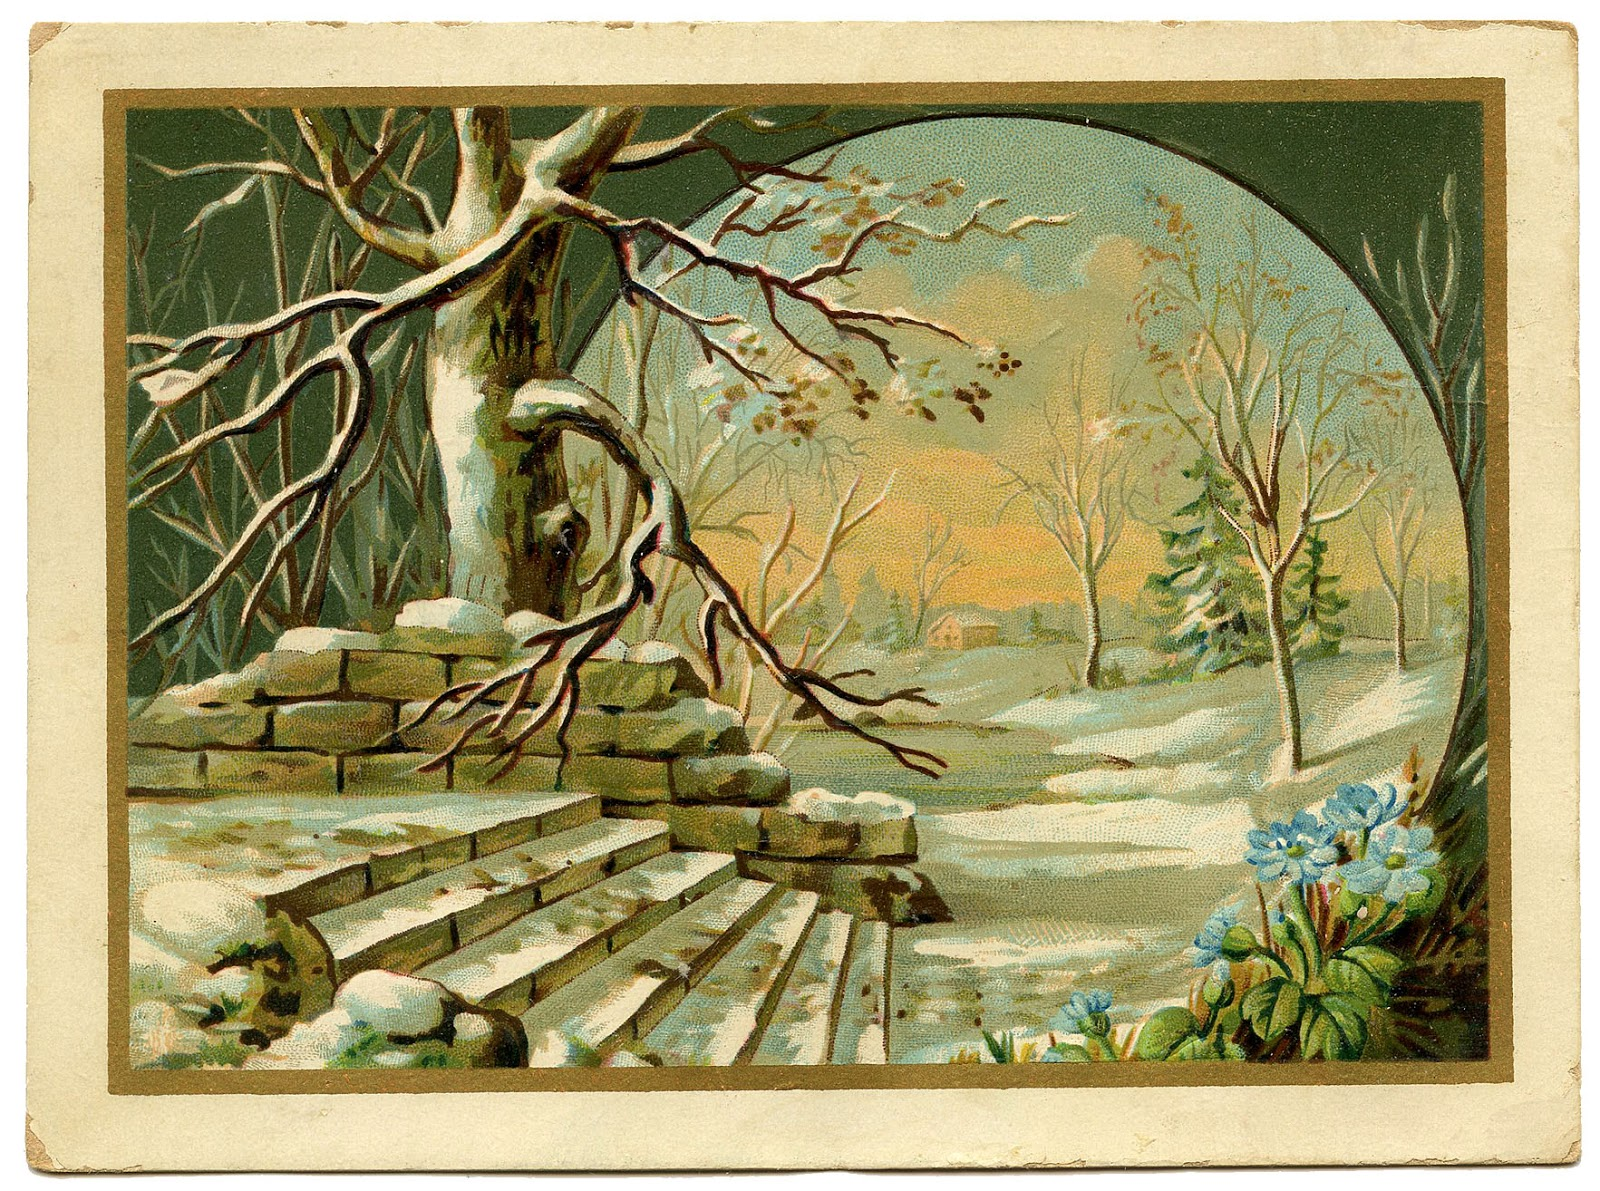 Vintage Bilder Vintage Graphic - Winter Landscape - The Graphics Fairy